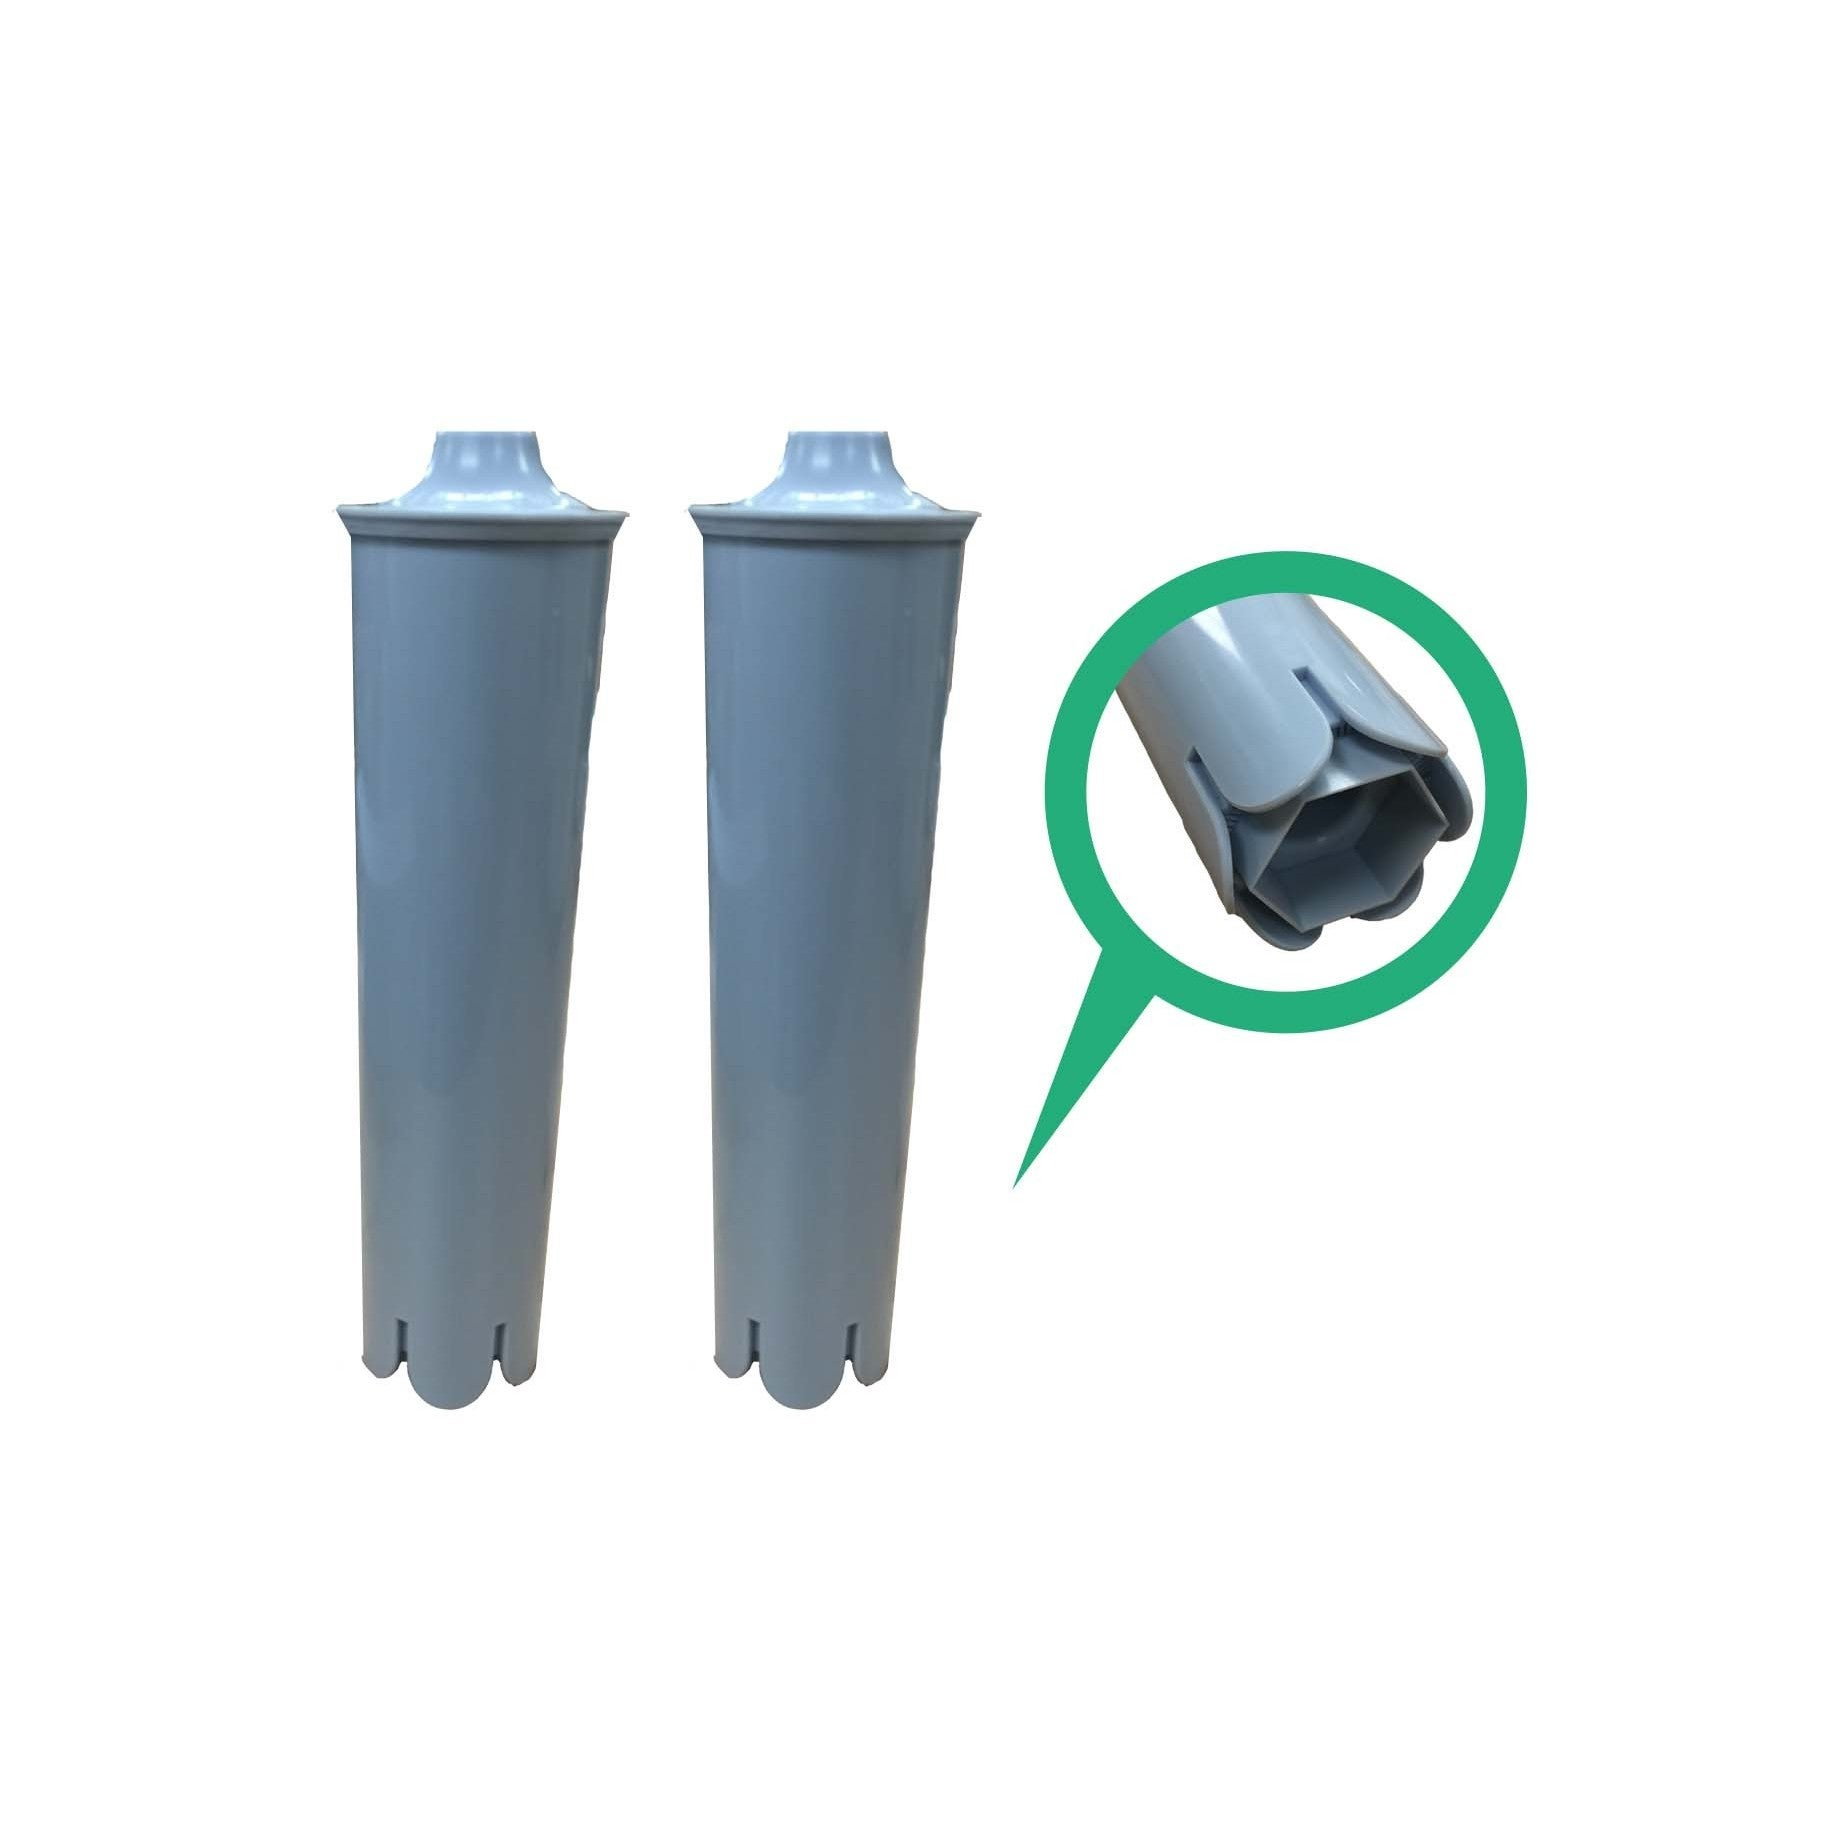 Crucial Jura Clearyl Blue Water Filters Fit Coffee Machin...